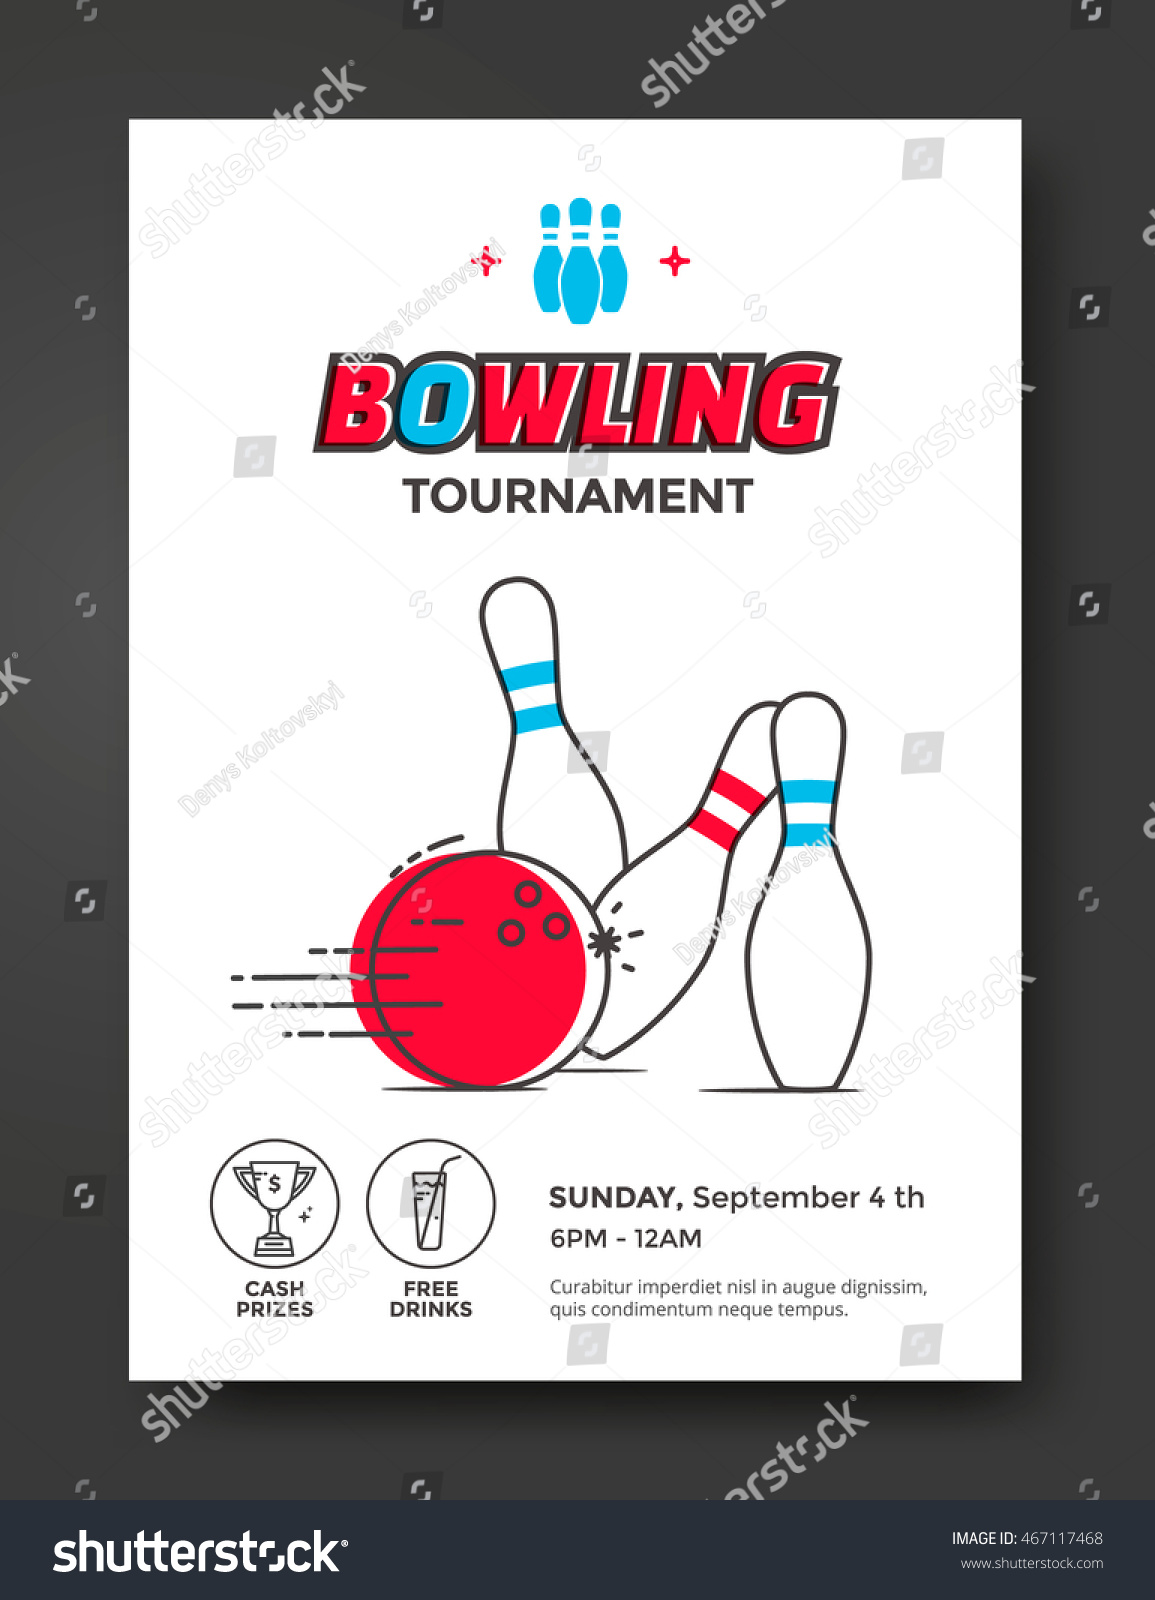 Bowling Tournament Poster Vector Template. Flyer With Line Illustration  Bowling Ball And Skittles.  Bowling Flyer Template Free